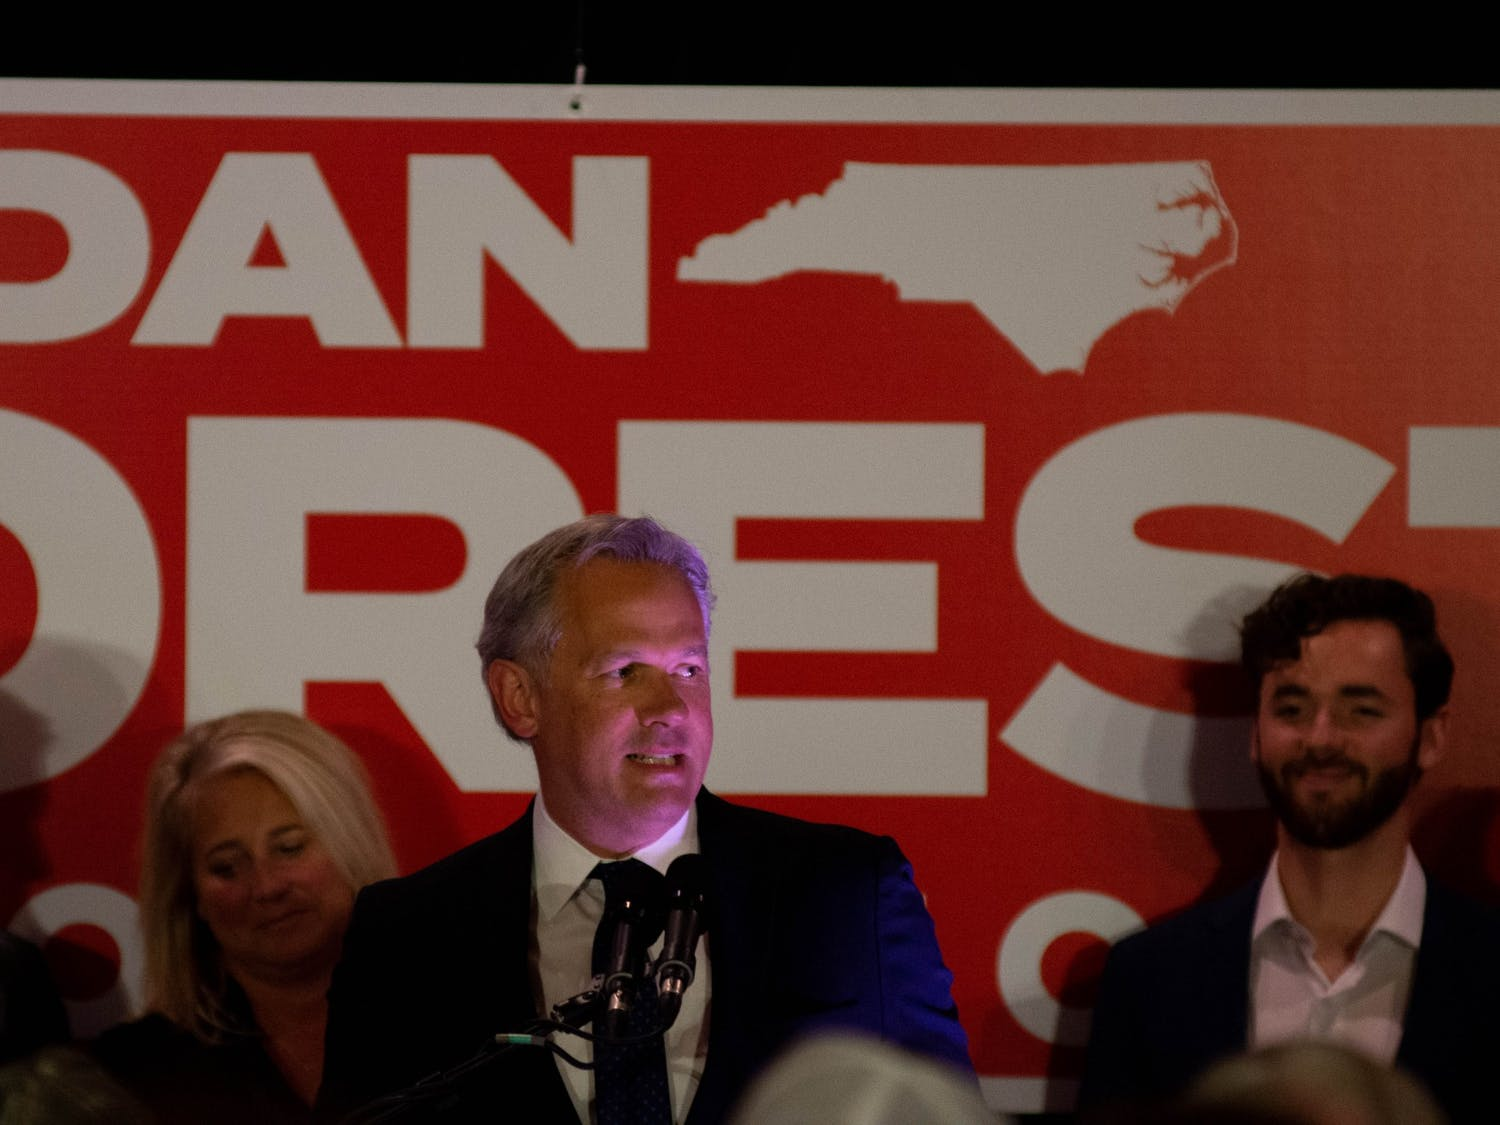 Lieutenant Governor and 2020 Republican gubernatorial candidate Dan Forest held an election night party on Nov 3, 2020, in Selma, NC. Forest did not overtake incumbent Governor Roy Cooper.